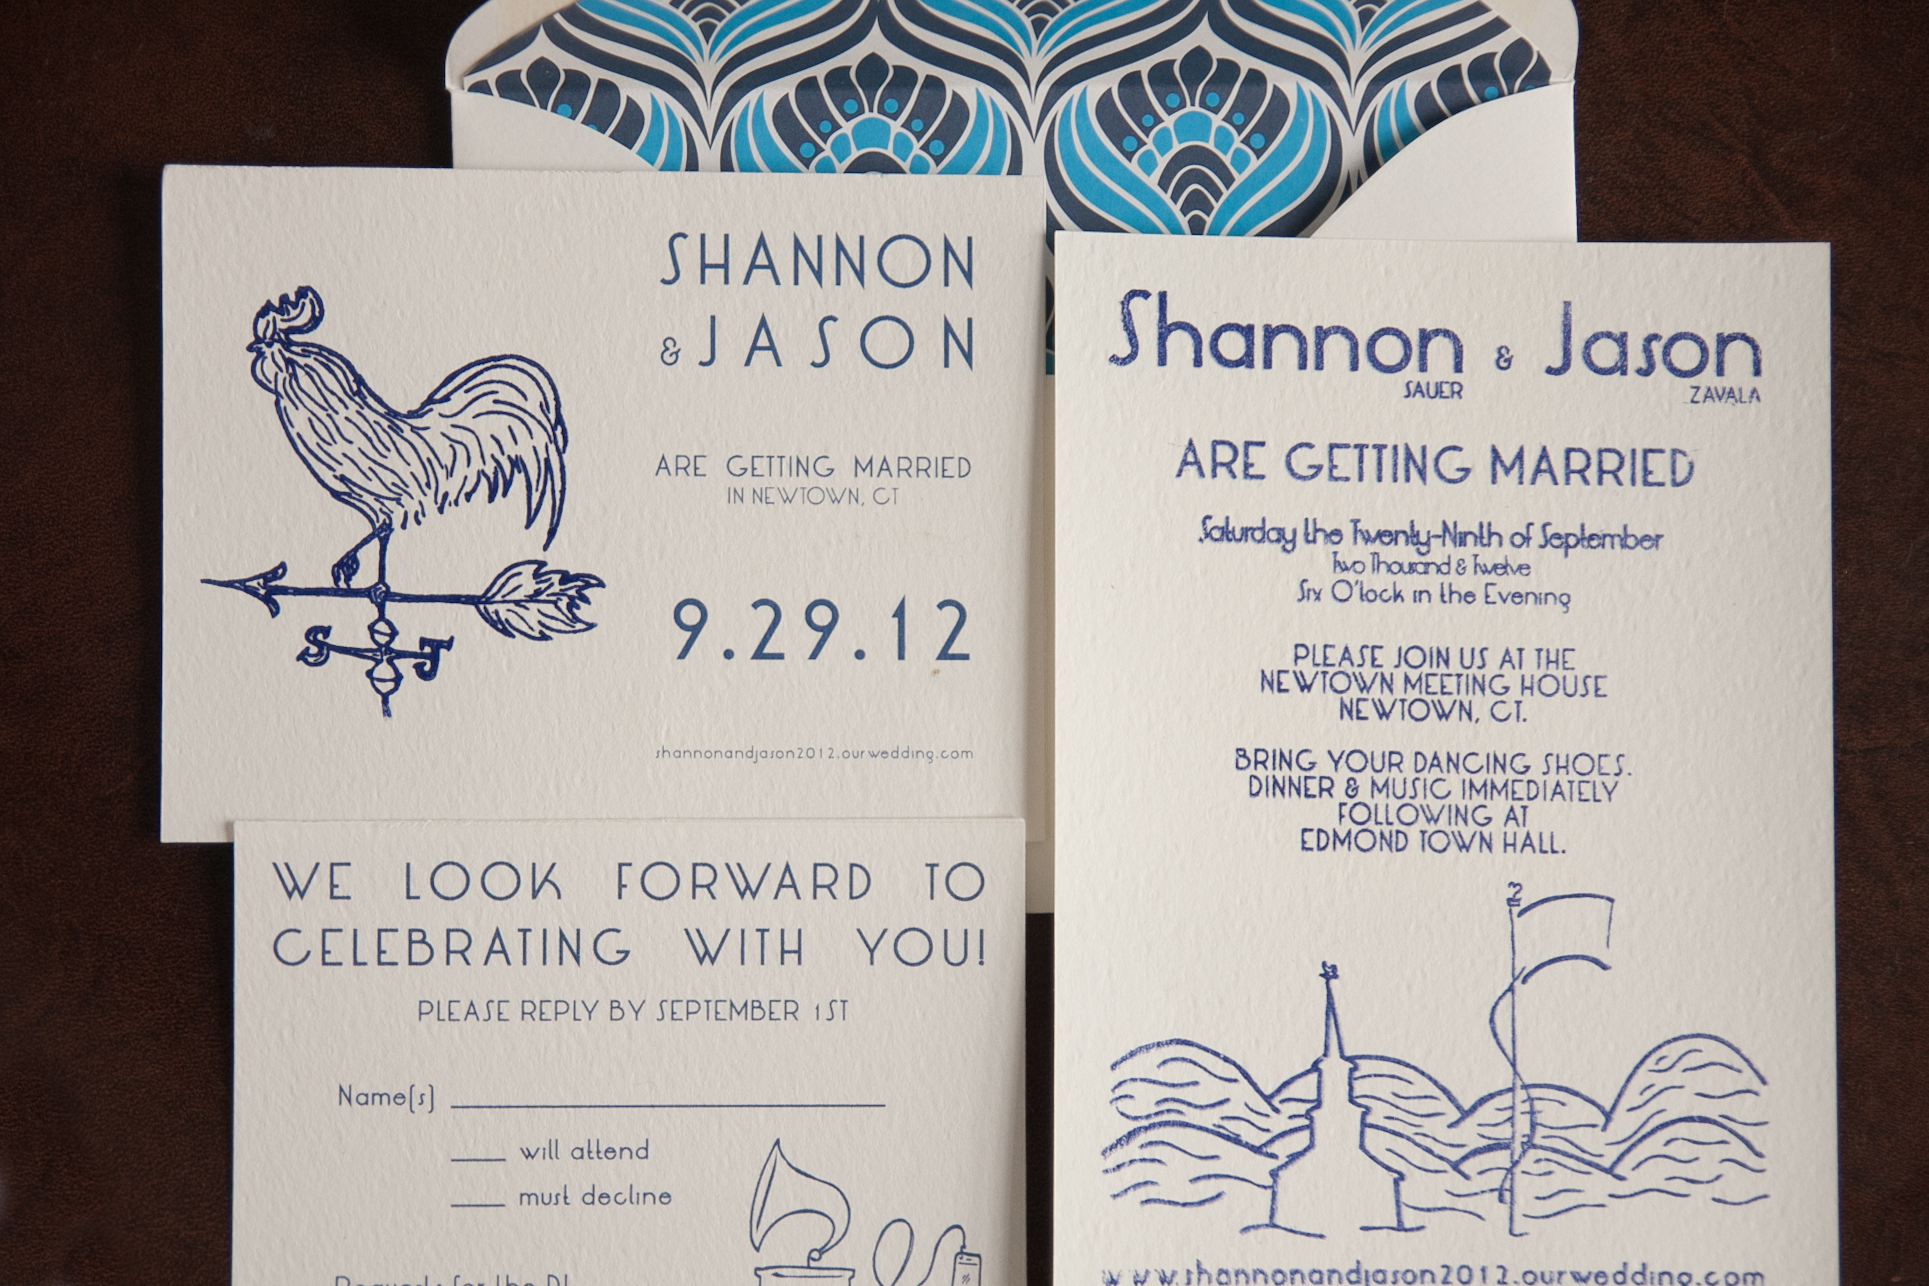 Our handmade wedding stationery city mouse shannon justin newtown ct 21 solutioingenieria Choice Image